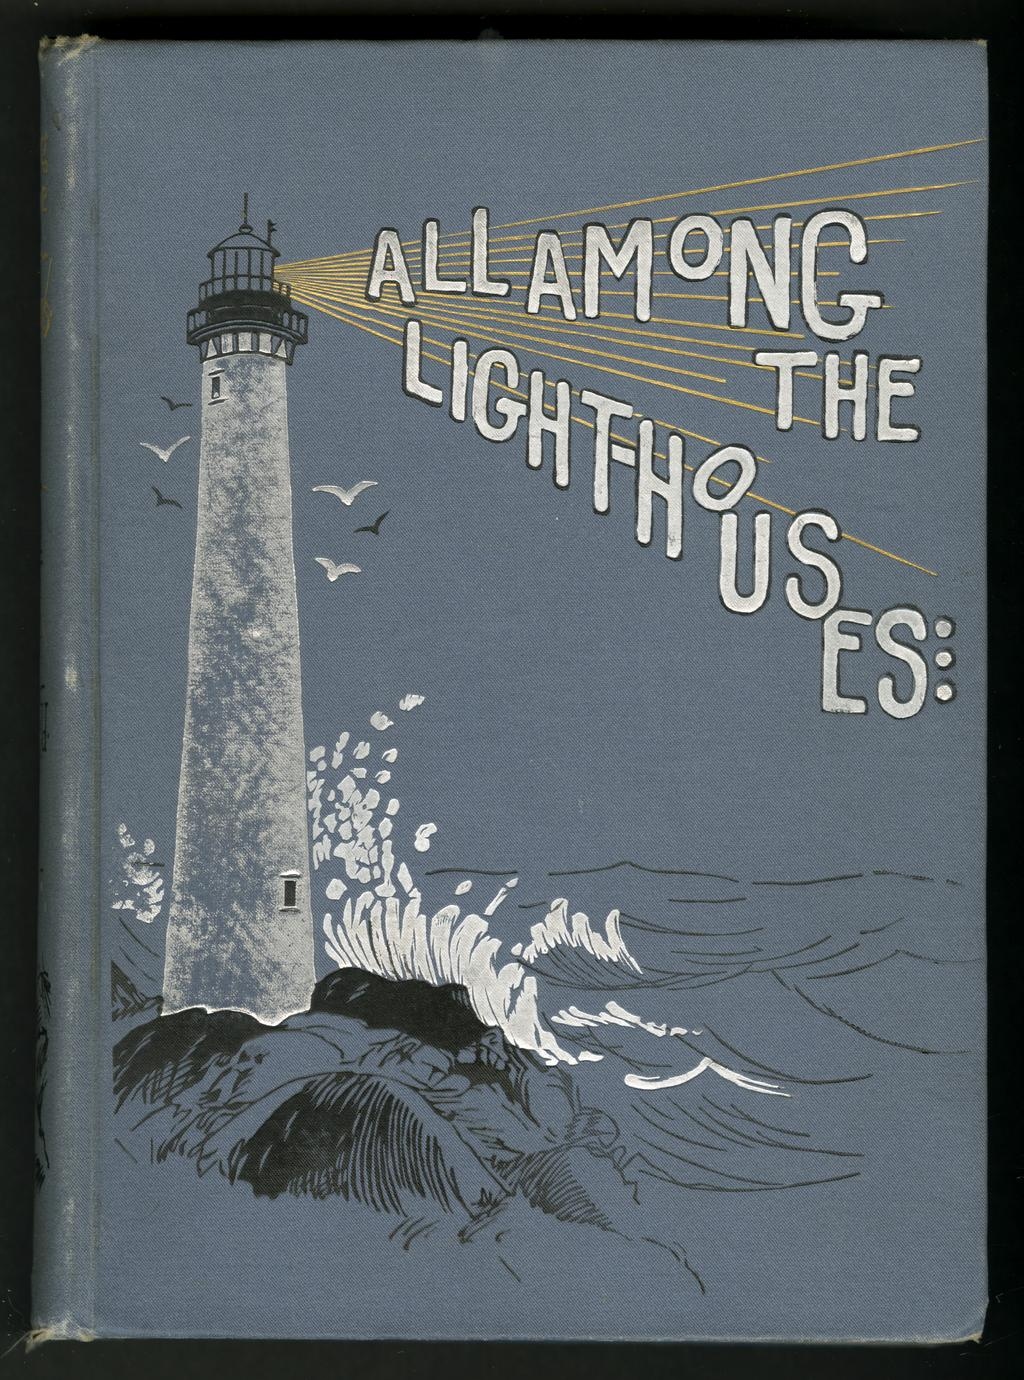 All among the lighthouses (1 of 3)